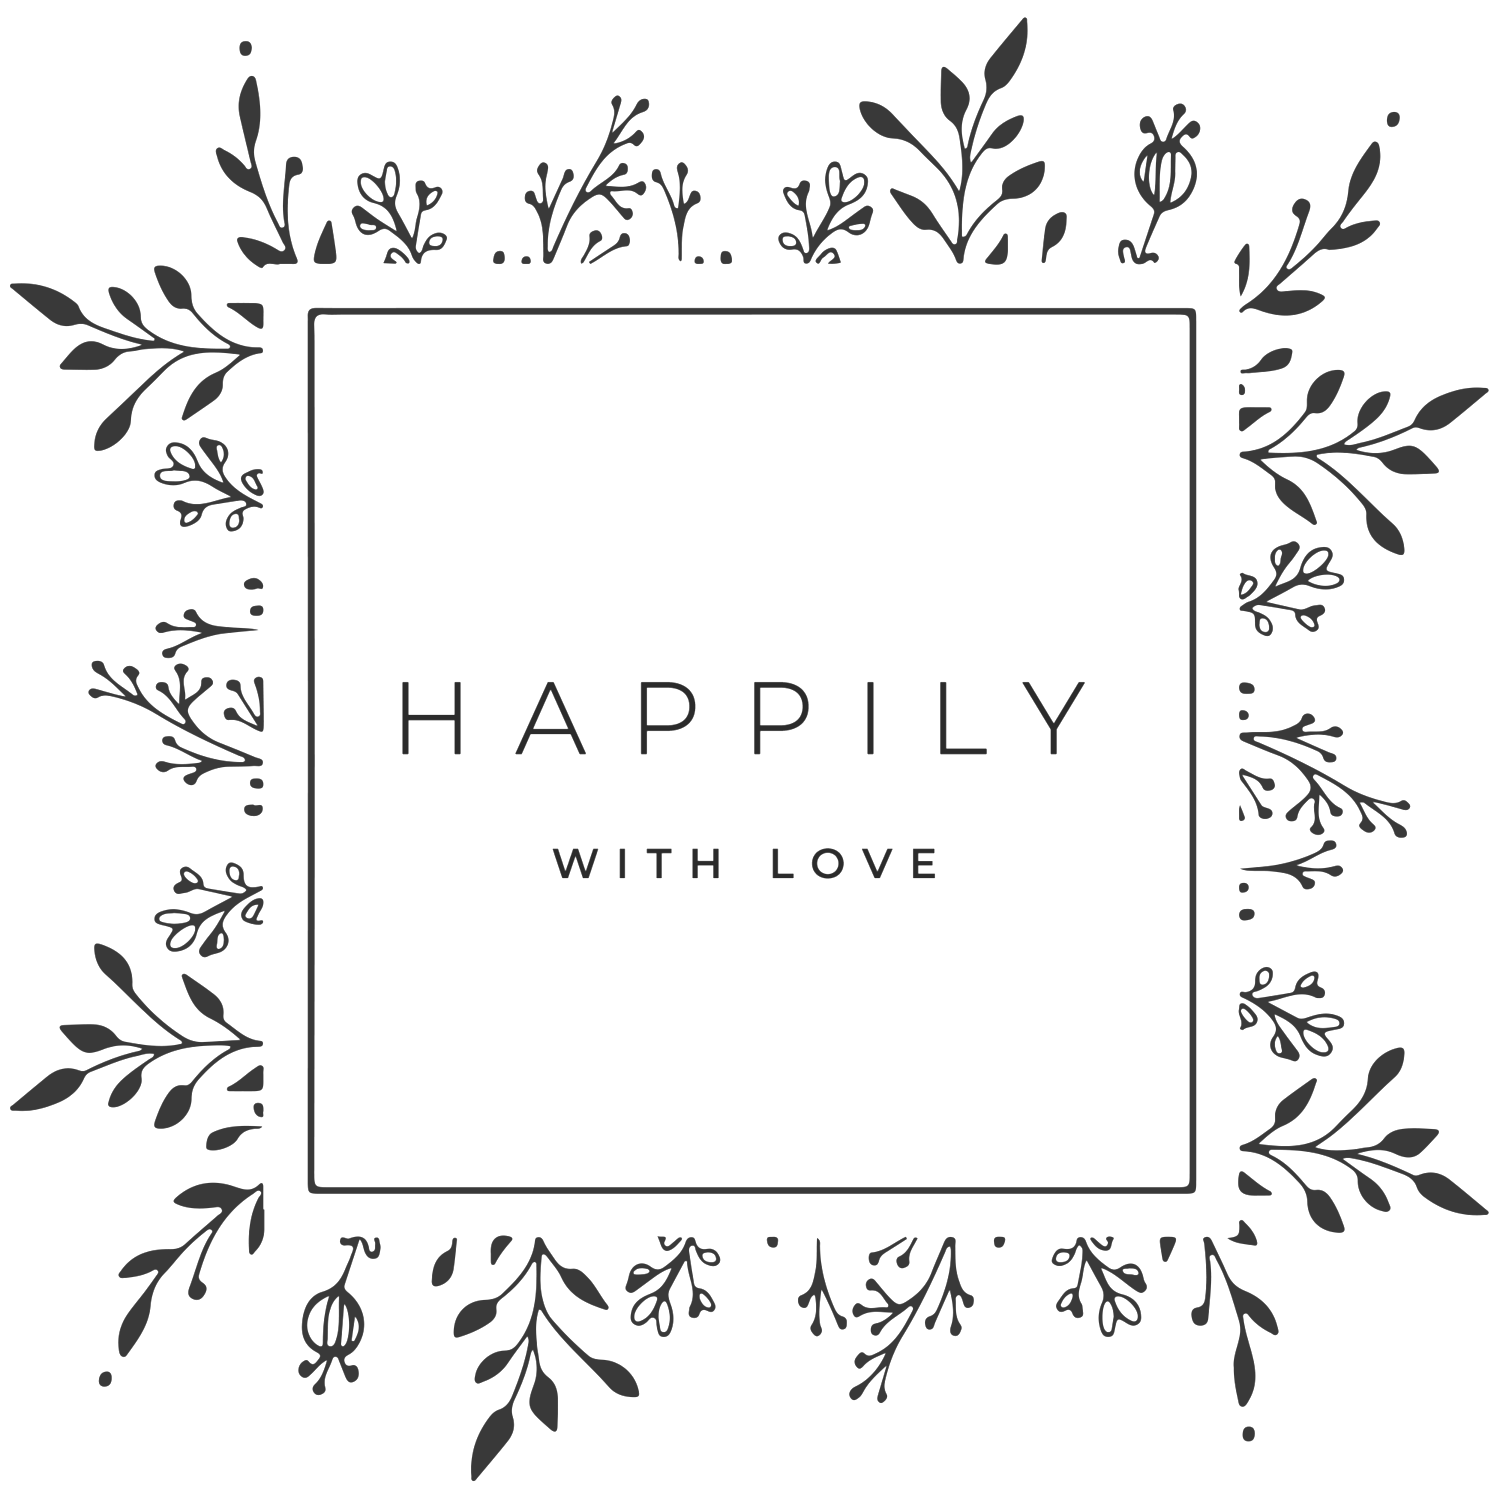 Happily With Love